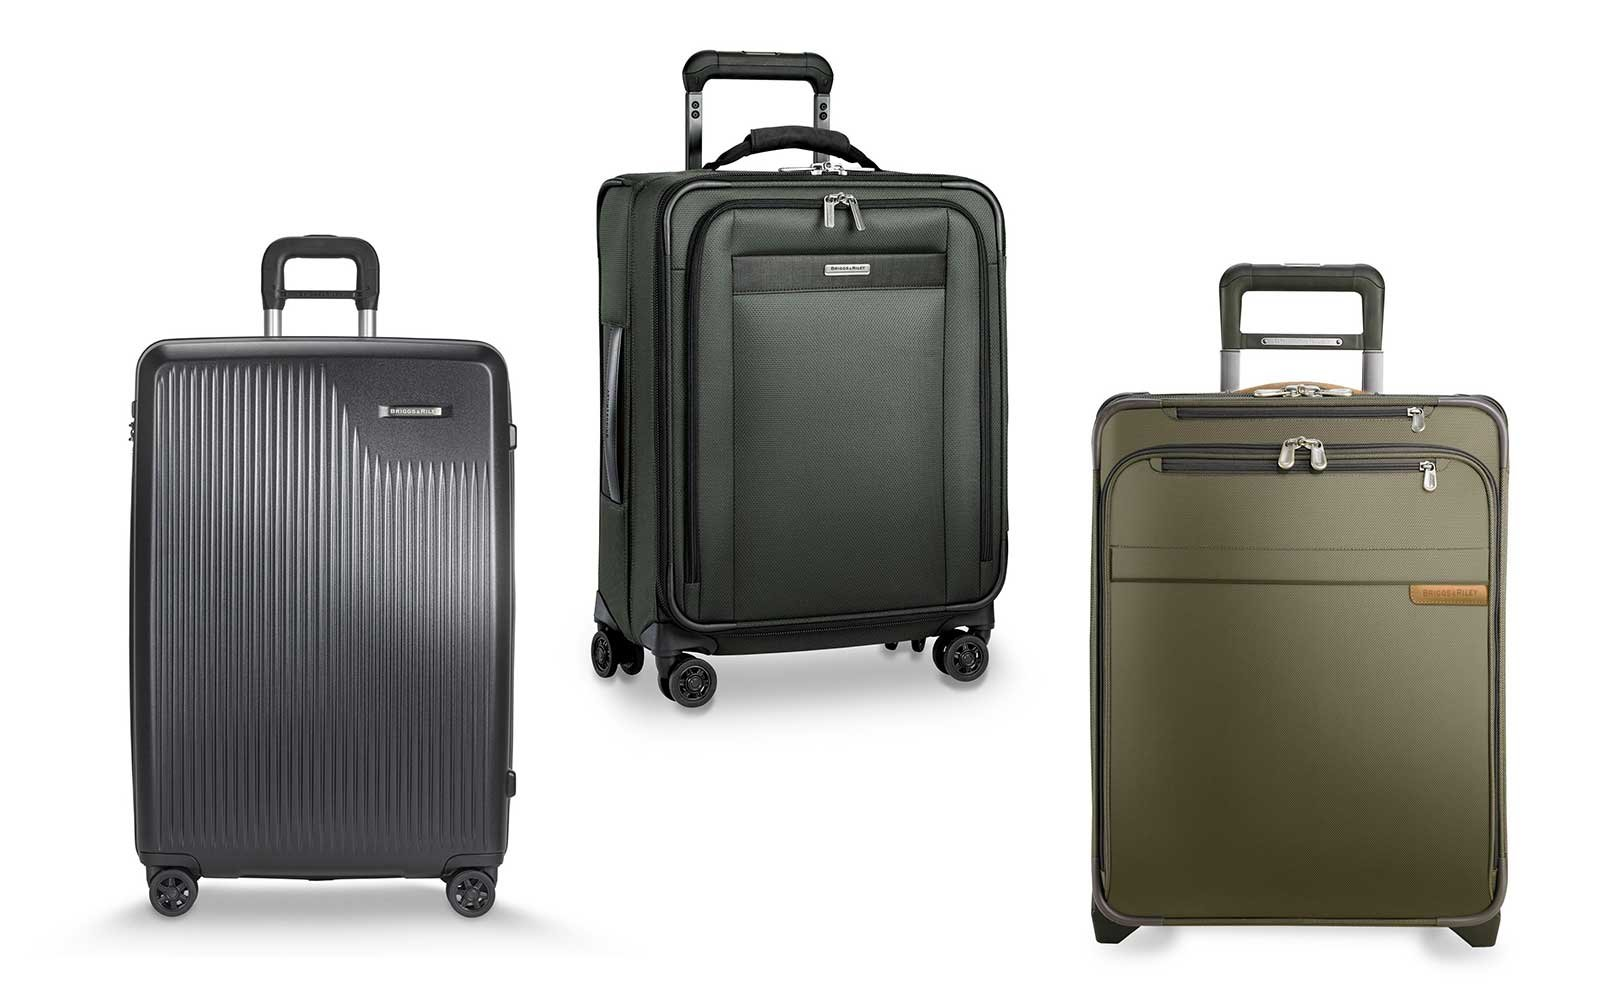 Briggs and Riley Suitcases